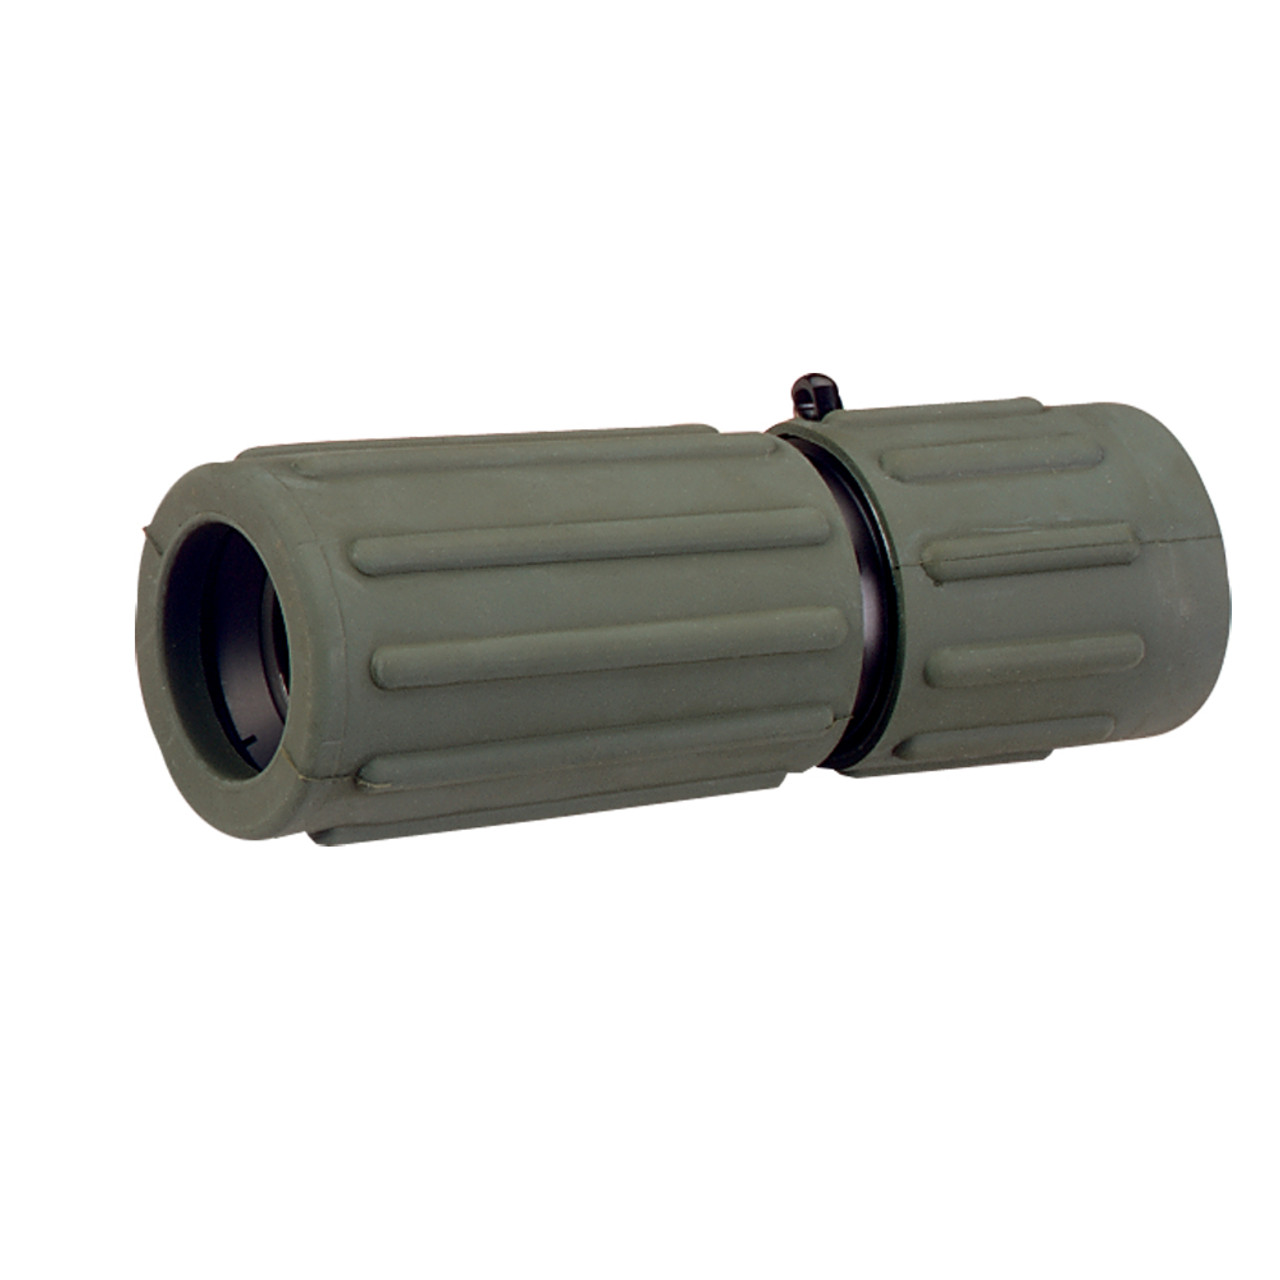 Walters 8x20 Rubber Coated Monocular